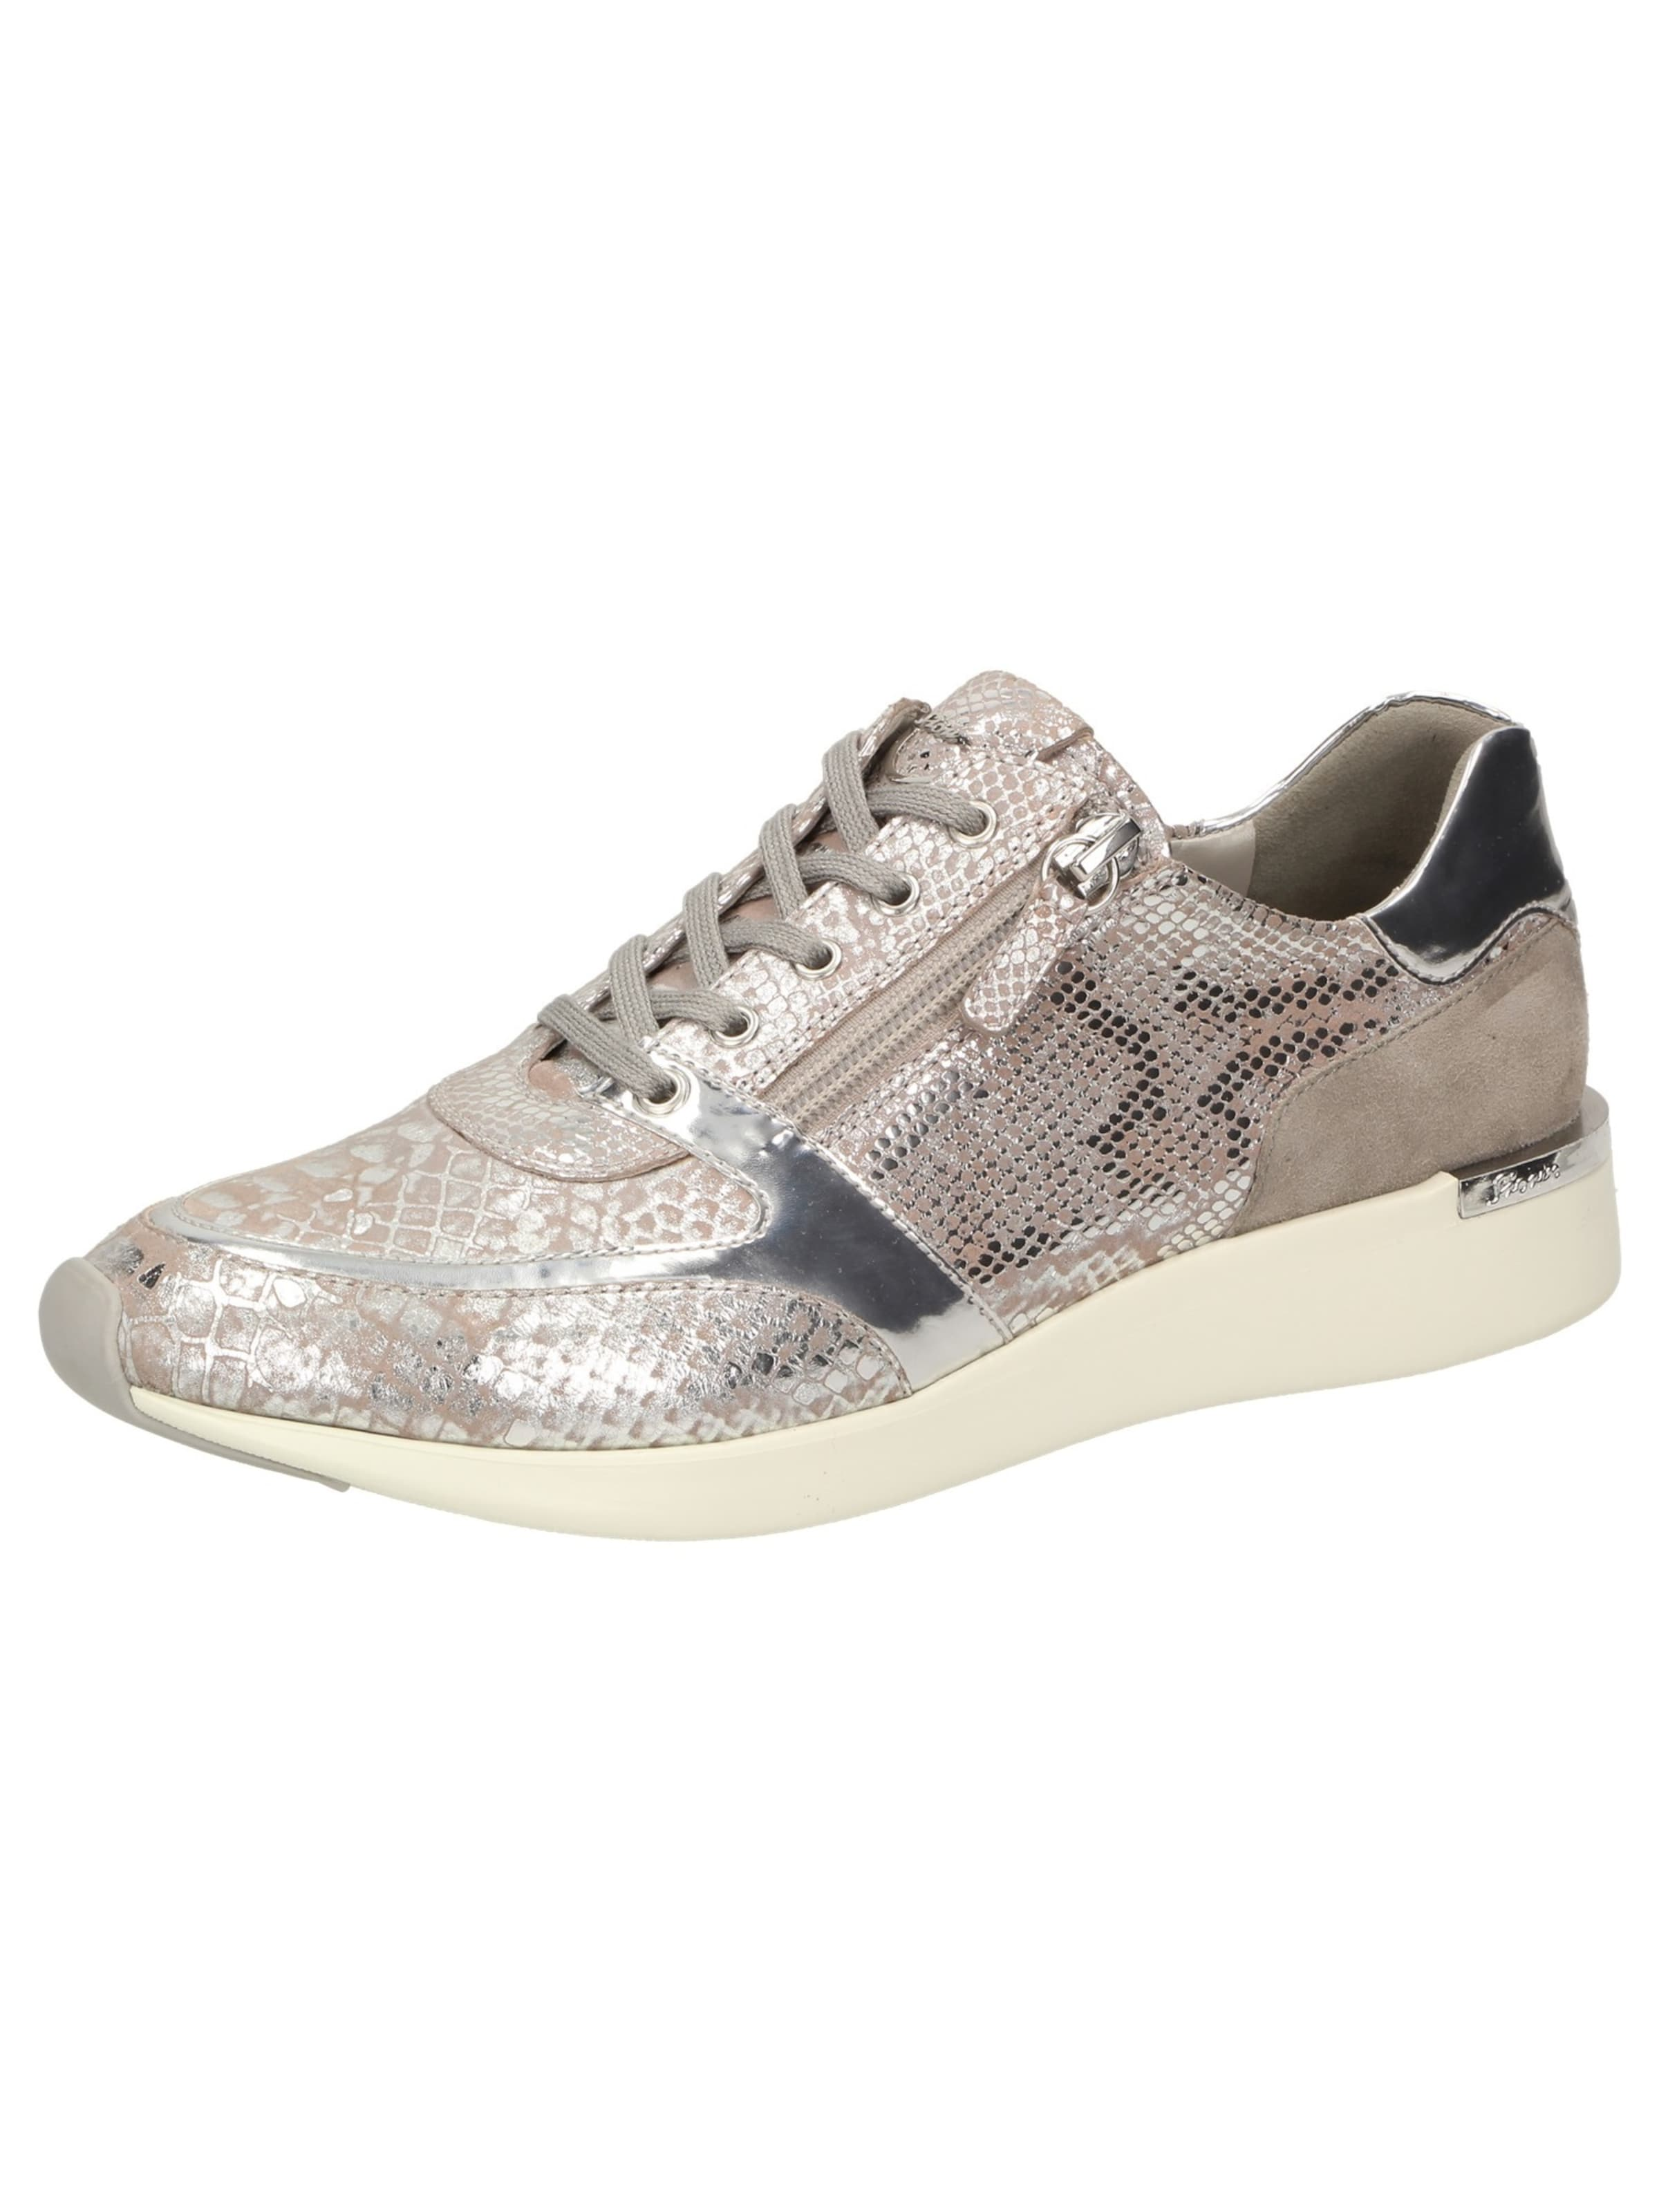 SIOUX Turnschuhe 'Malosika-701' in beige   taupe   silber